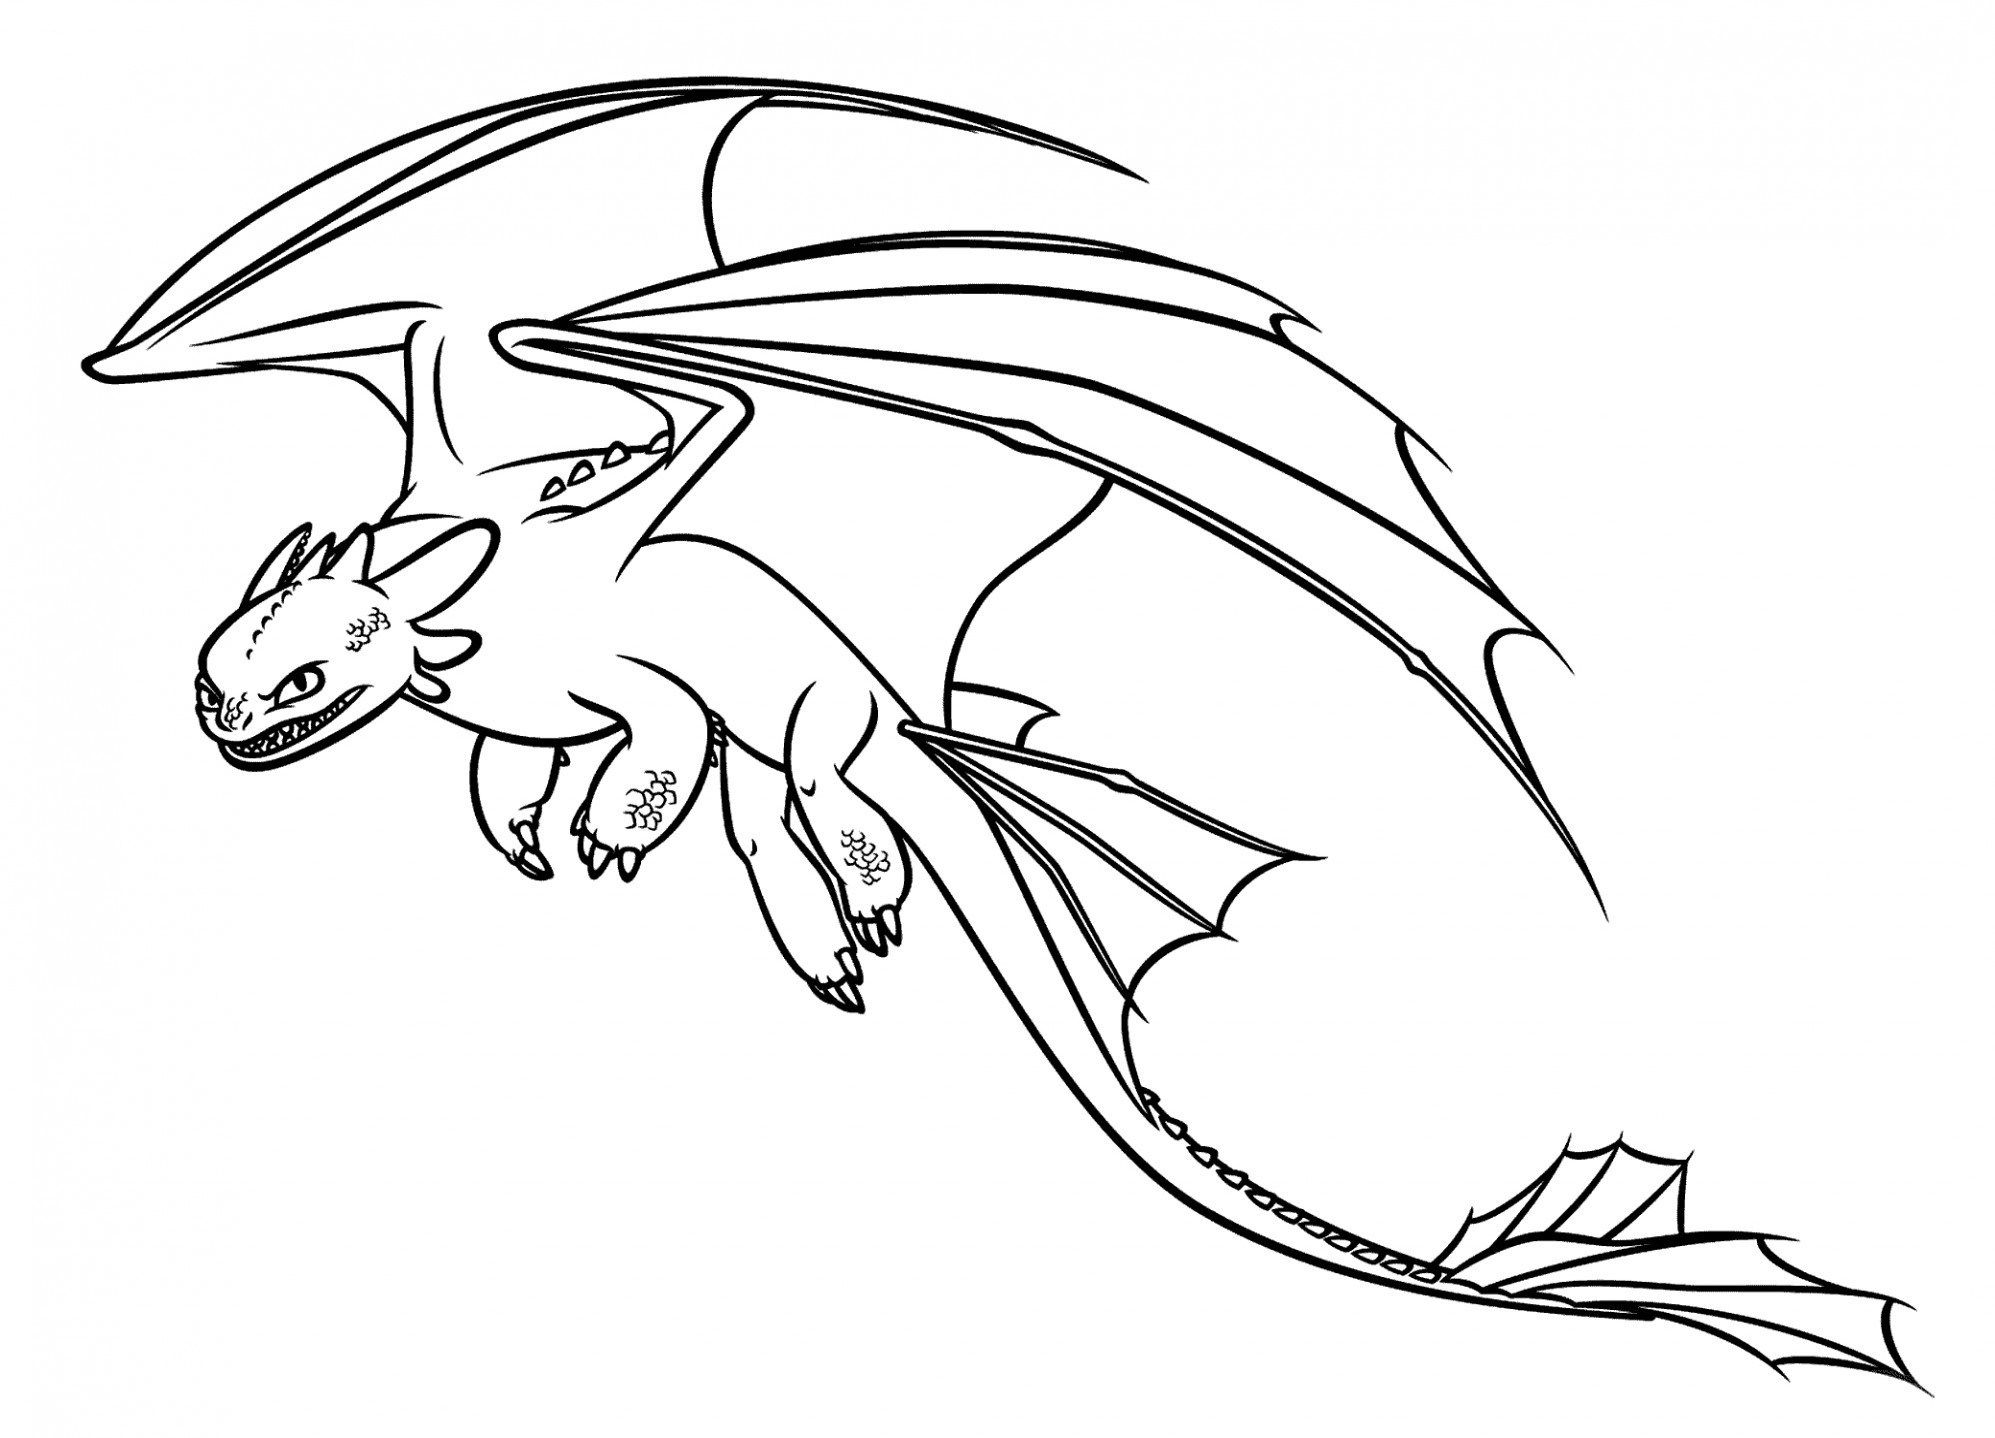 Free Dragon Coloring Pages Free How To Train Your Dragon Coloring Pages How To Train Your Entitlementtrap Com Dragon Coloring Page How Train Your Dragon Coloring Pages